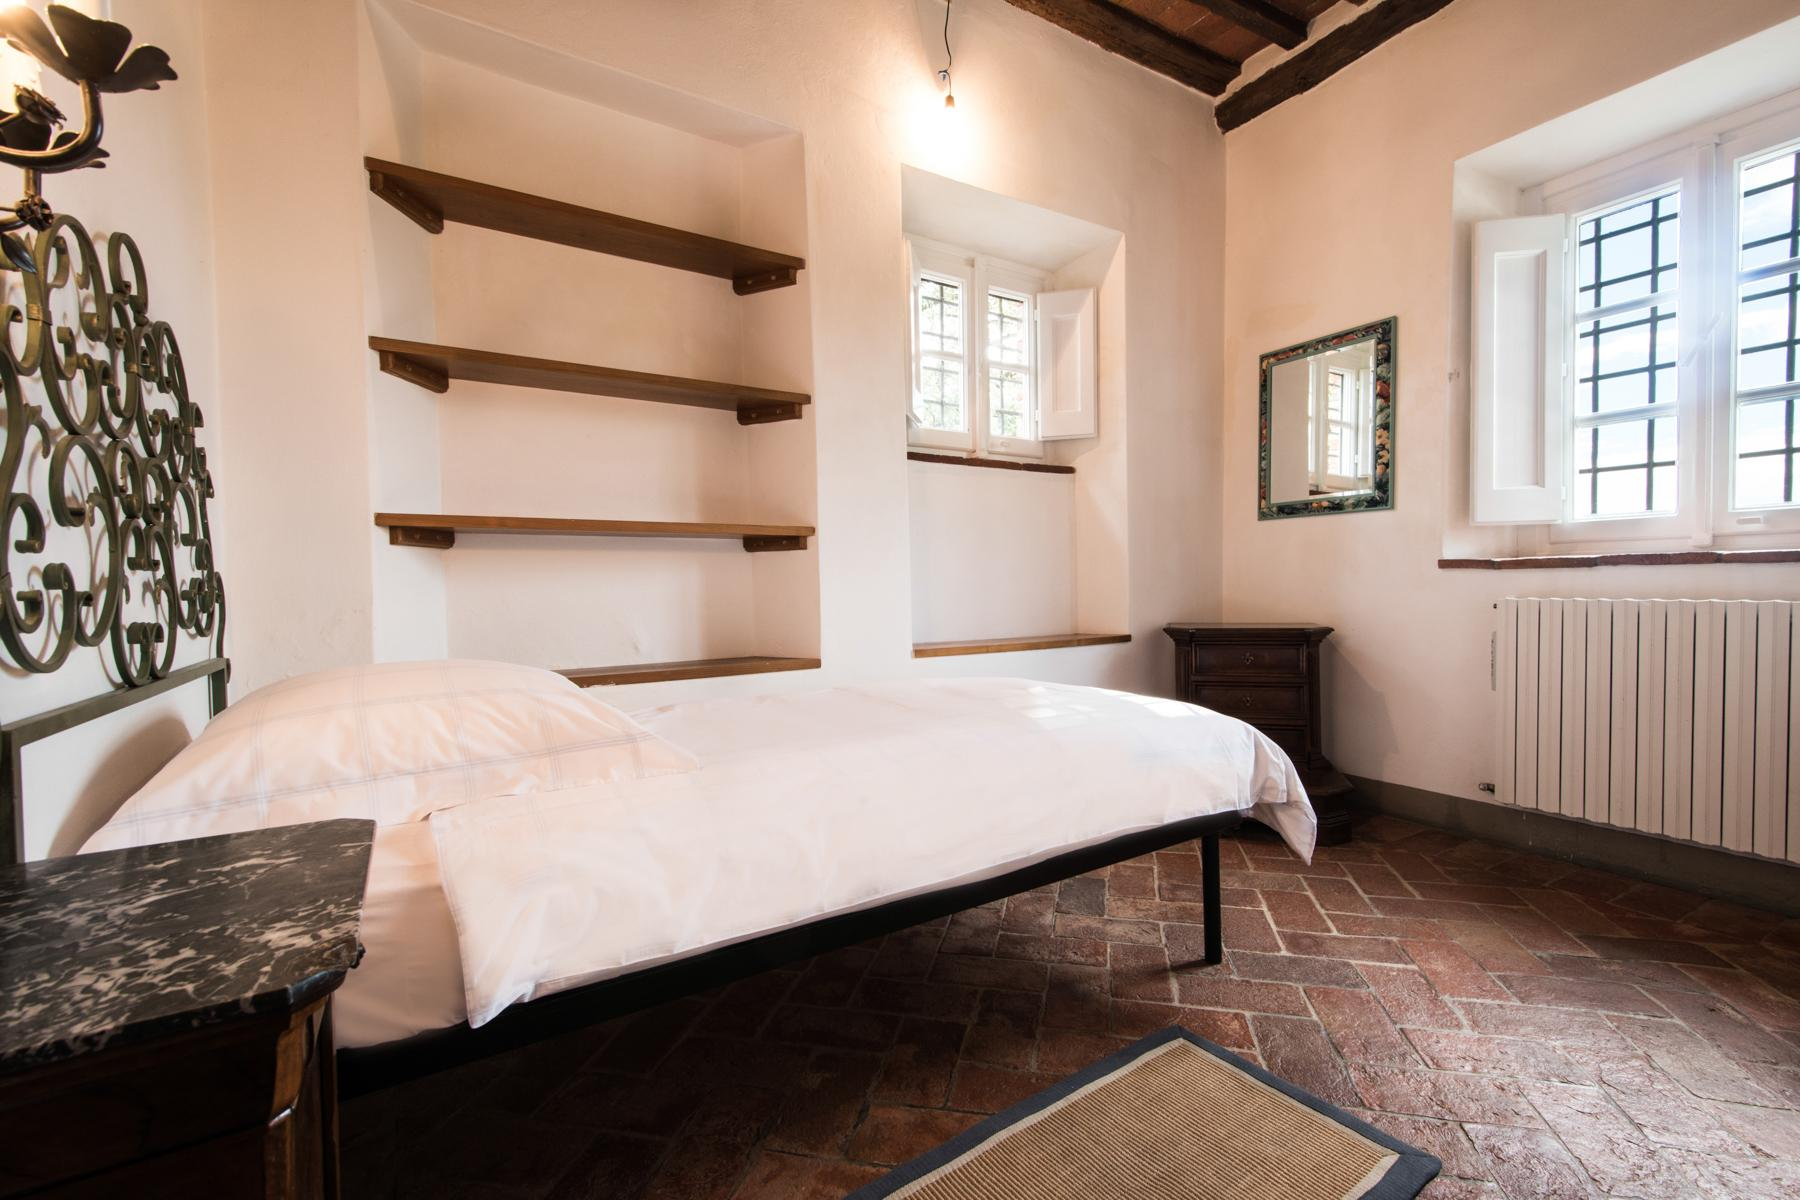 Marvelous villa in the countryside of Lucca - 22